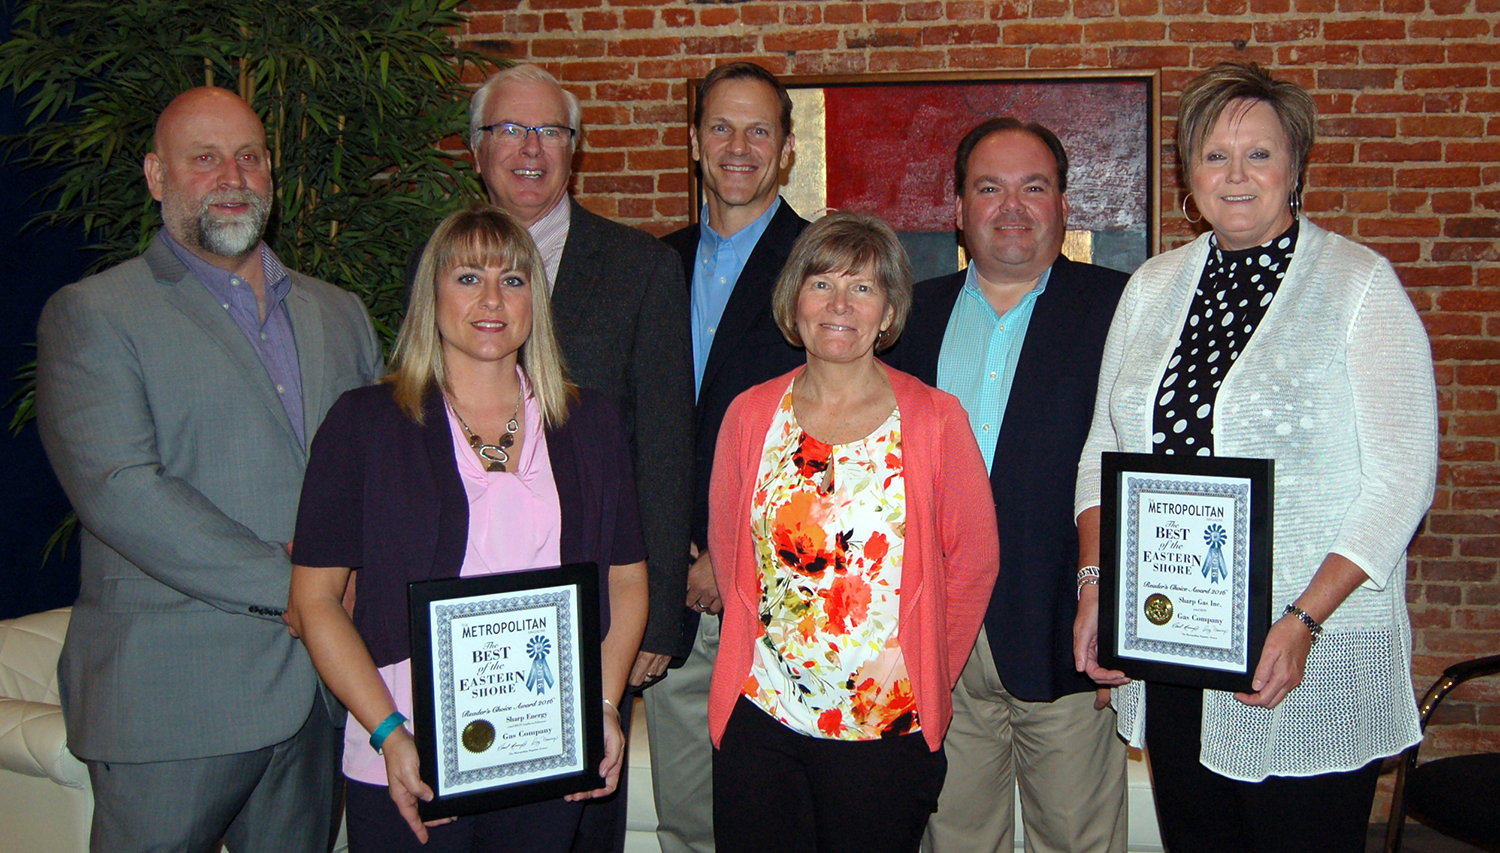 """The Sharp Energy team accepts two awards for """"Best Gas Company"""" at Metropolitan Magazine's Best of the Eastern Shore gala in Salisbury, Maryland"""